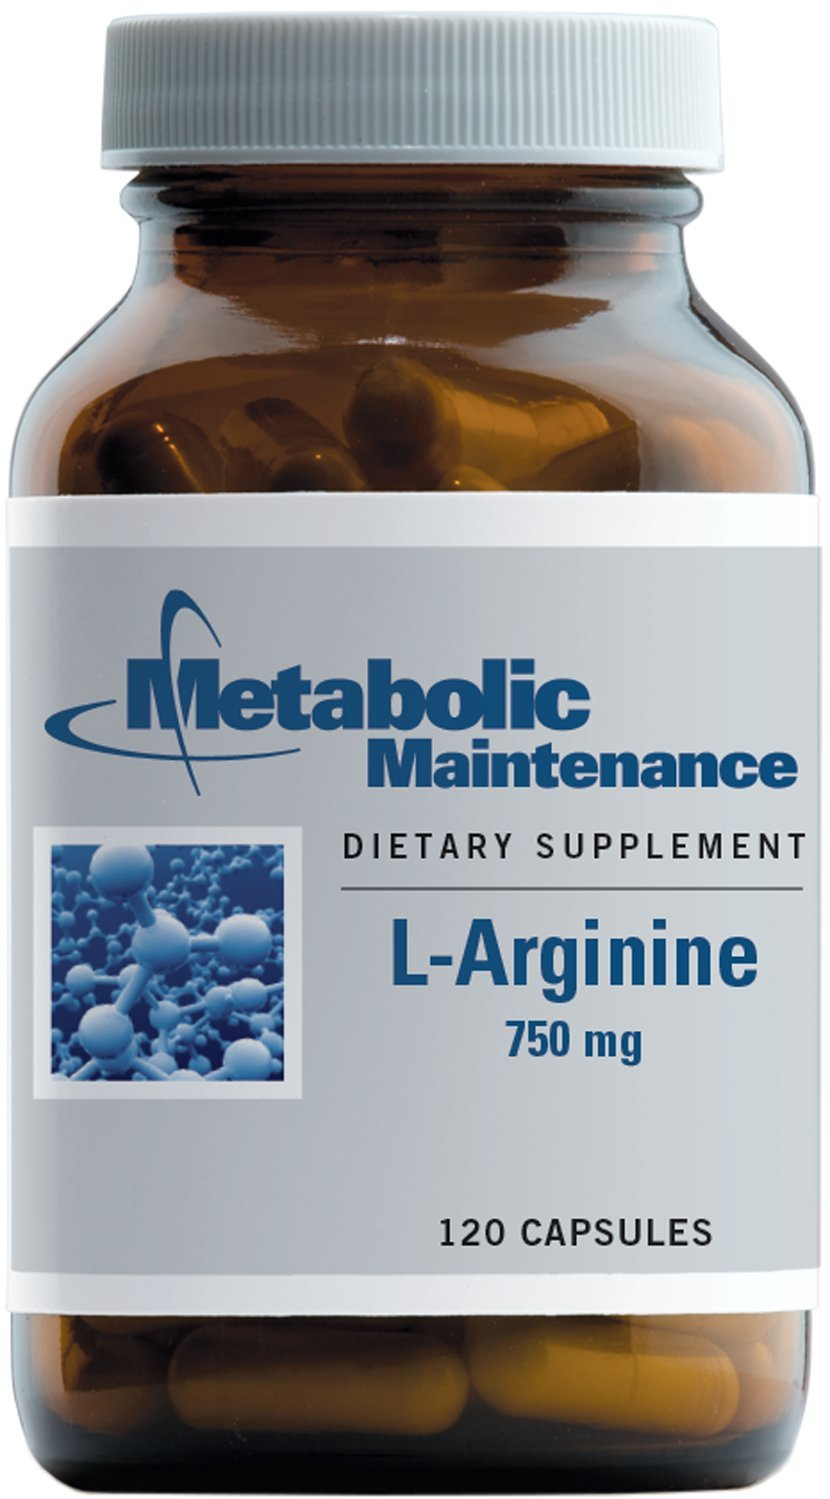 Metabolic Maintenance - L-Arginine - 750 mg, Amino Acid Support, 120 Capsules